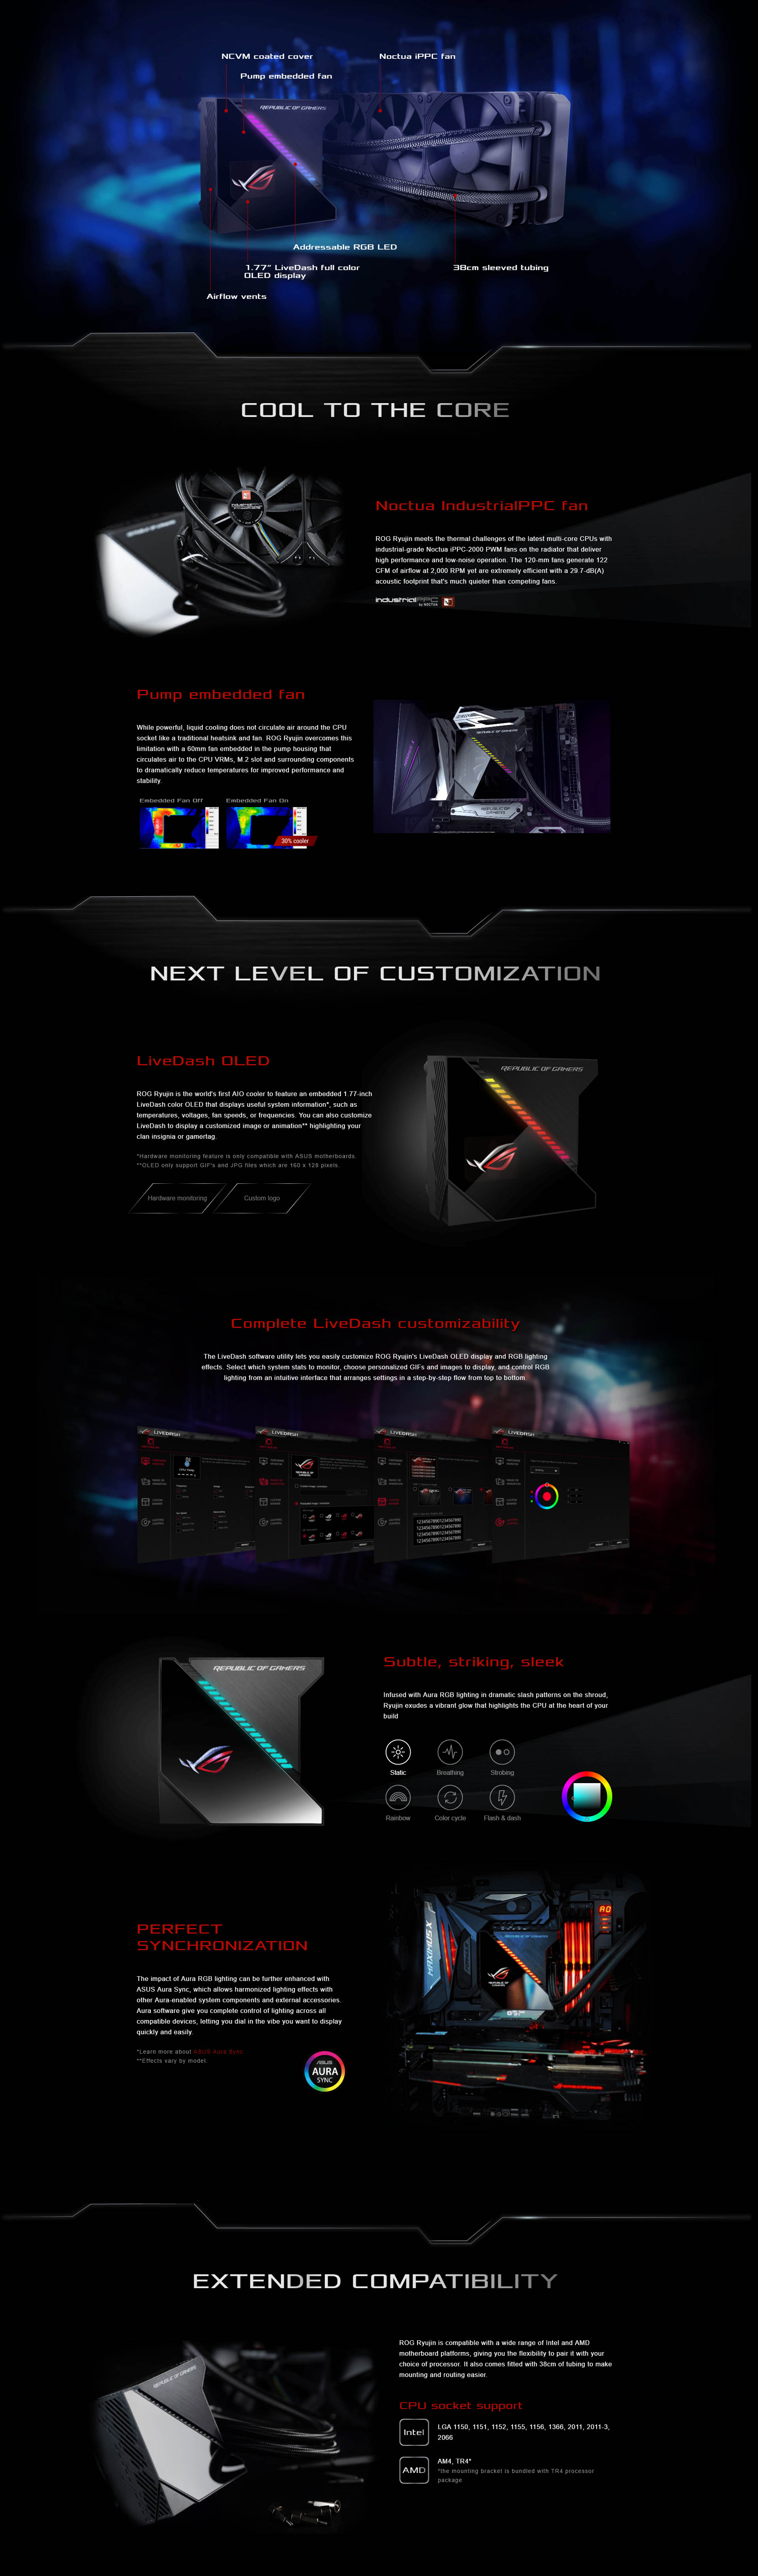 A large marketing image providing additional information about the product ASUS ROG RYUJIN 360 RGB AIO Liquid Cooler - Additional alt info not provided